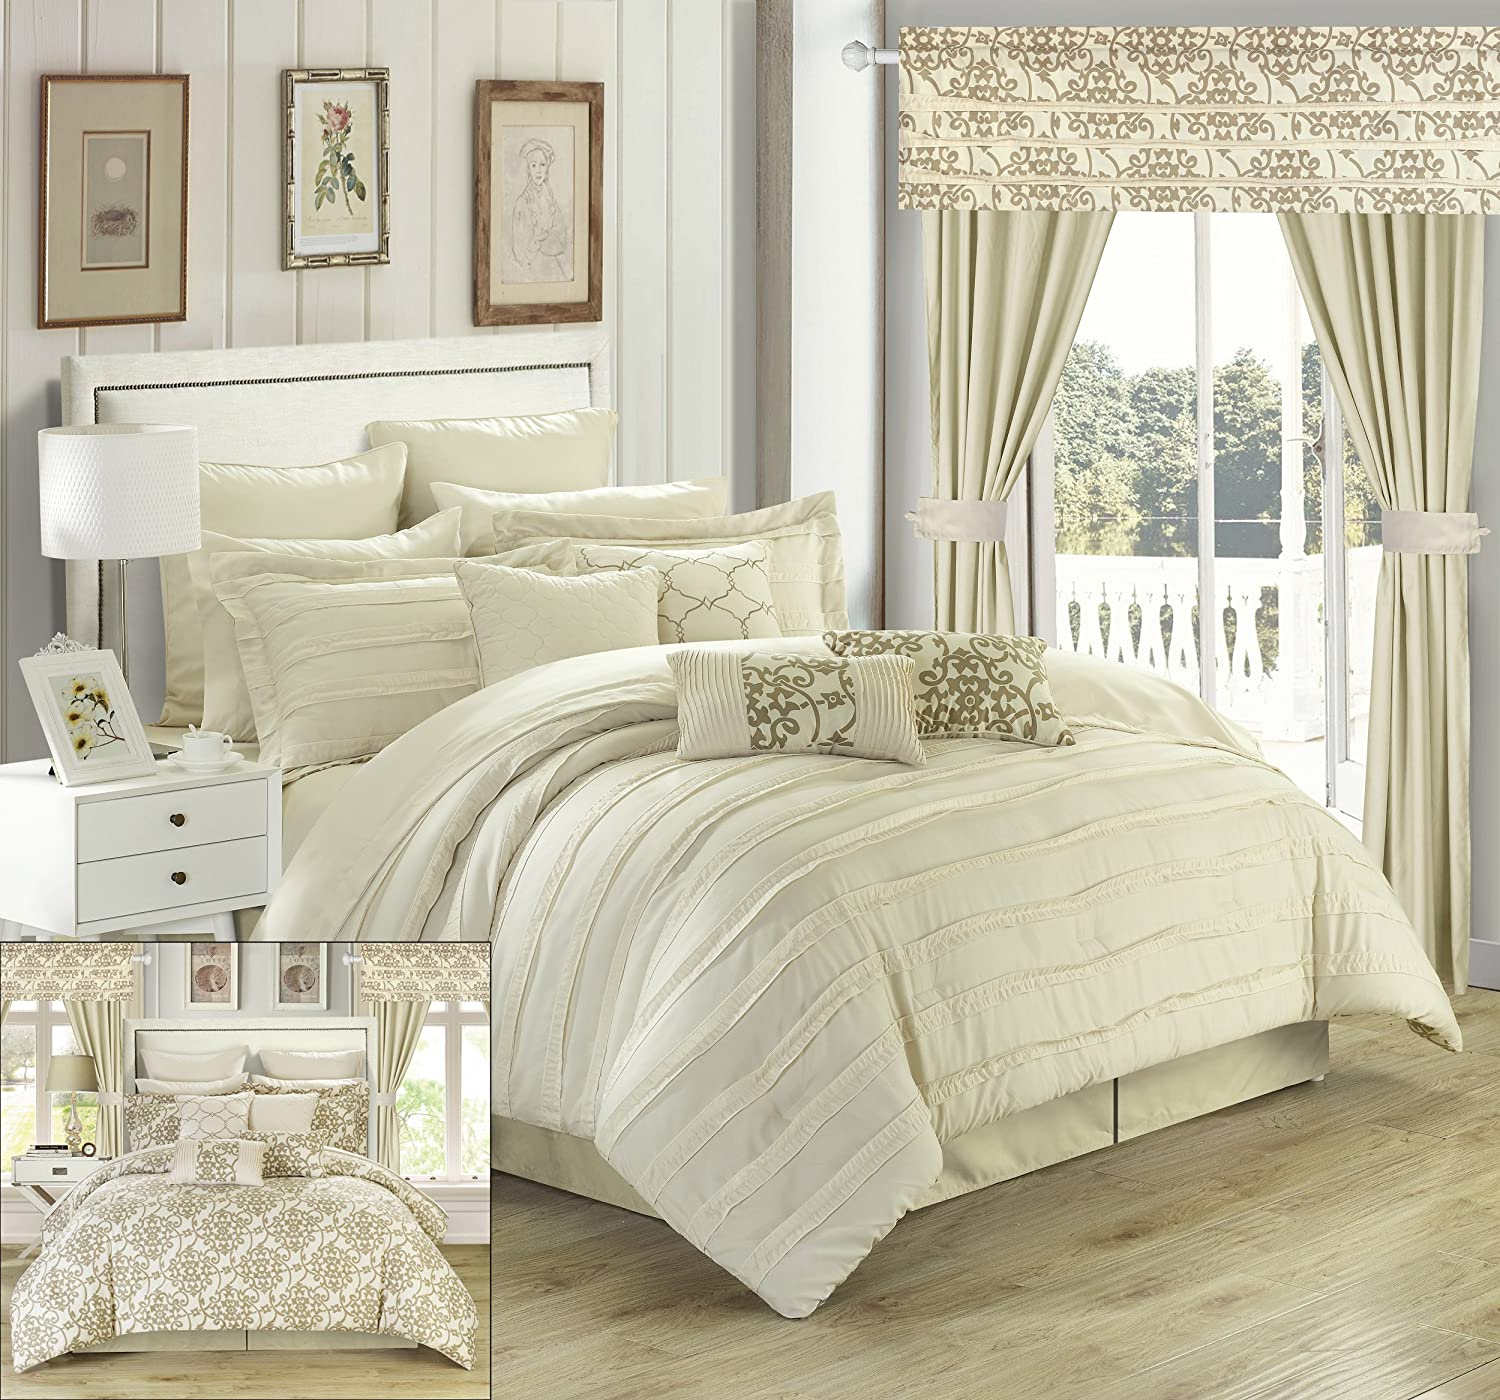 Chic Home 24 Piece Hailee Complete Pleated Ruffles and Reversible Printed Bed in a Bag Comforter Set